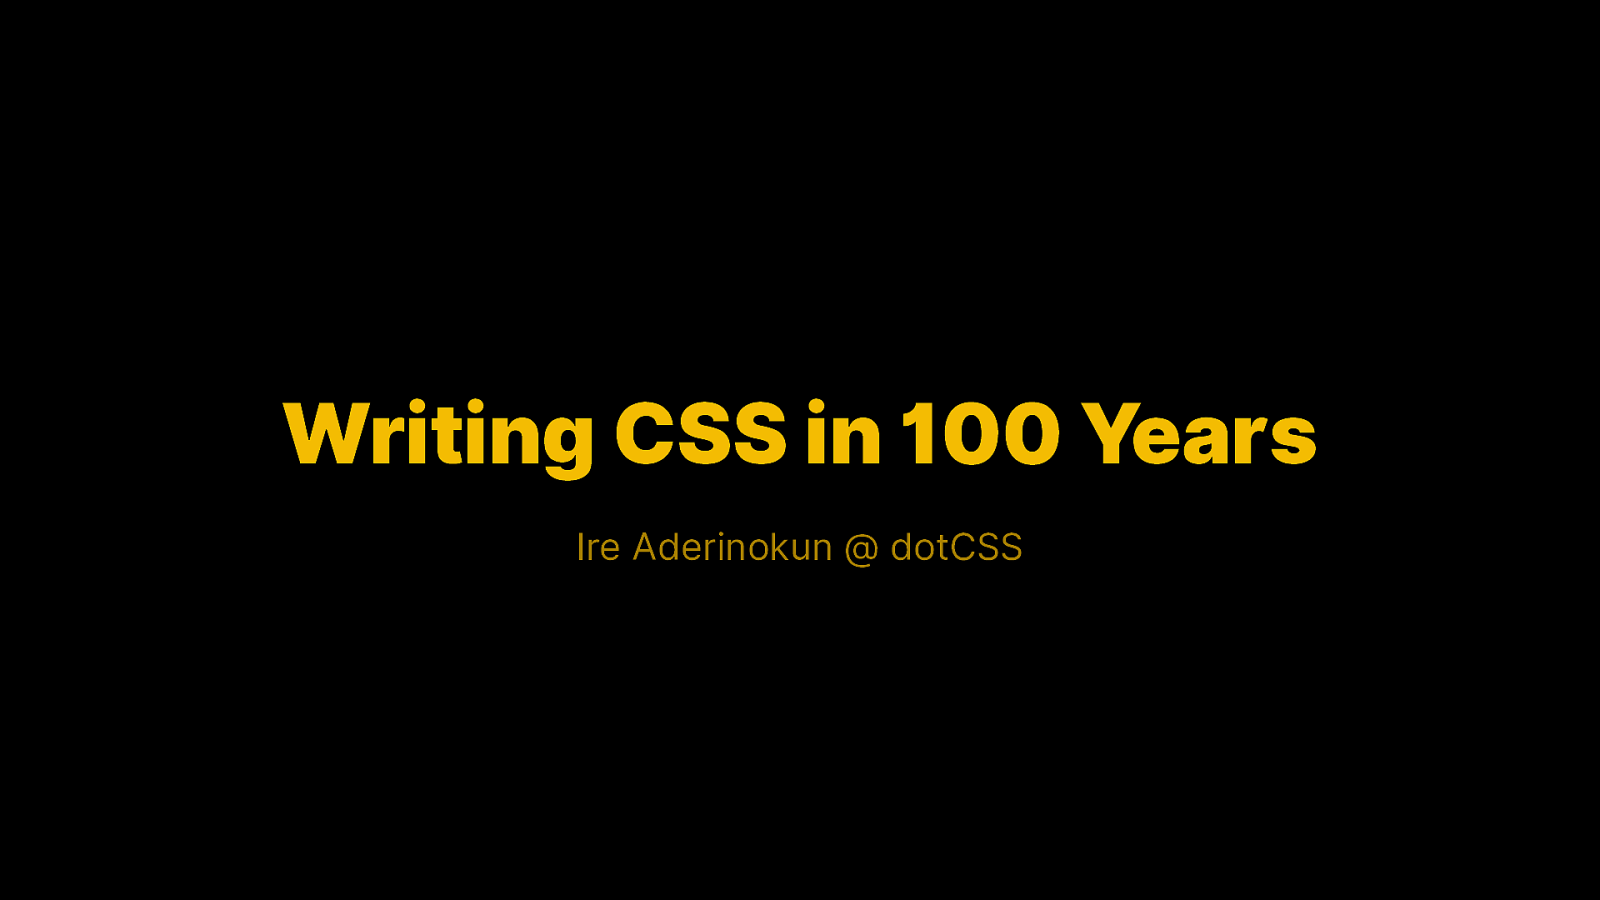 Writing CSS in 100 Years